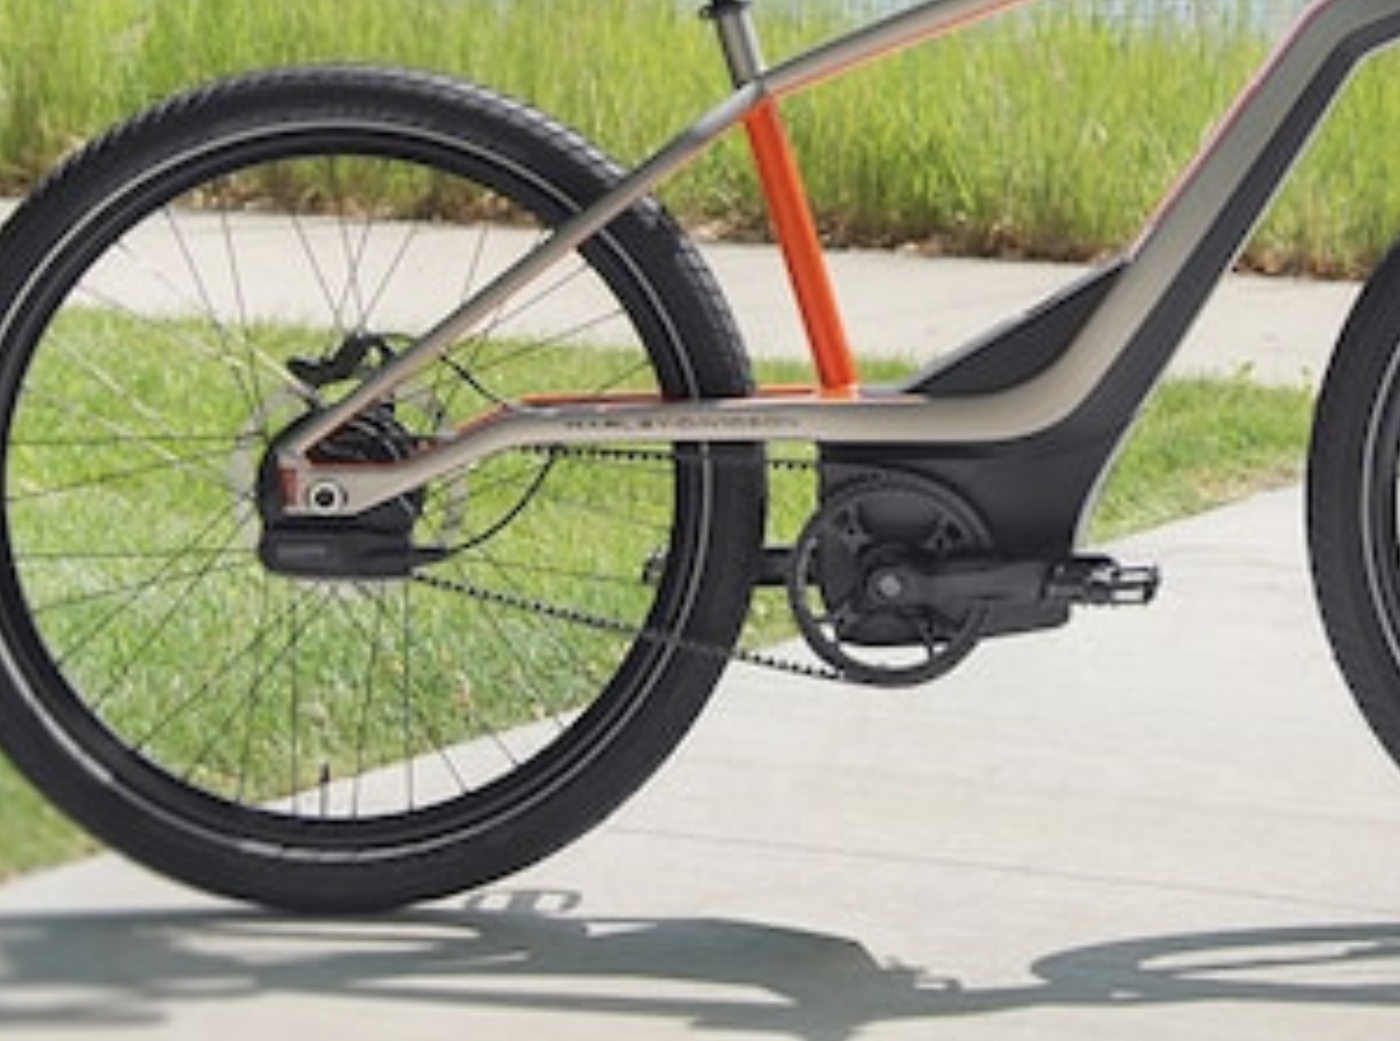 Harley-Davidson electric bicycles